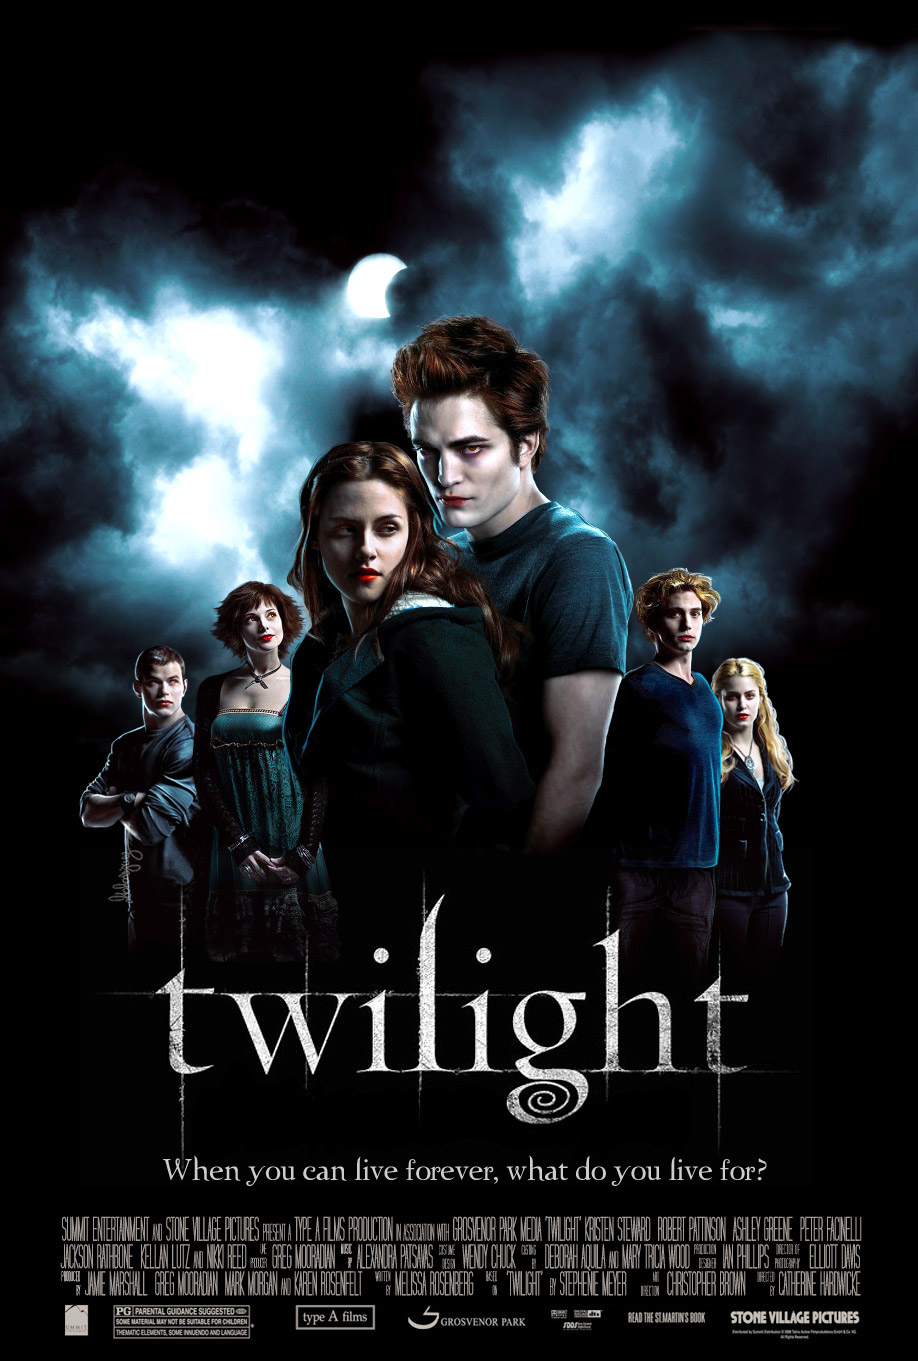 Twilight 2008 Dual Hindi - Eng Compressed Small Size Pc Movie Free Download Only At FullmovieZ.in